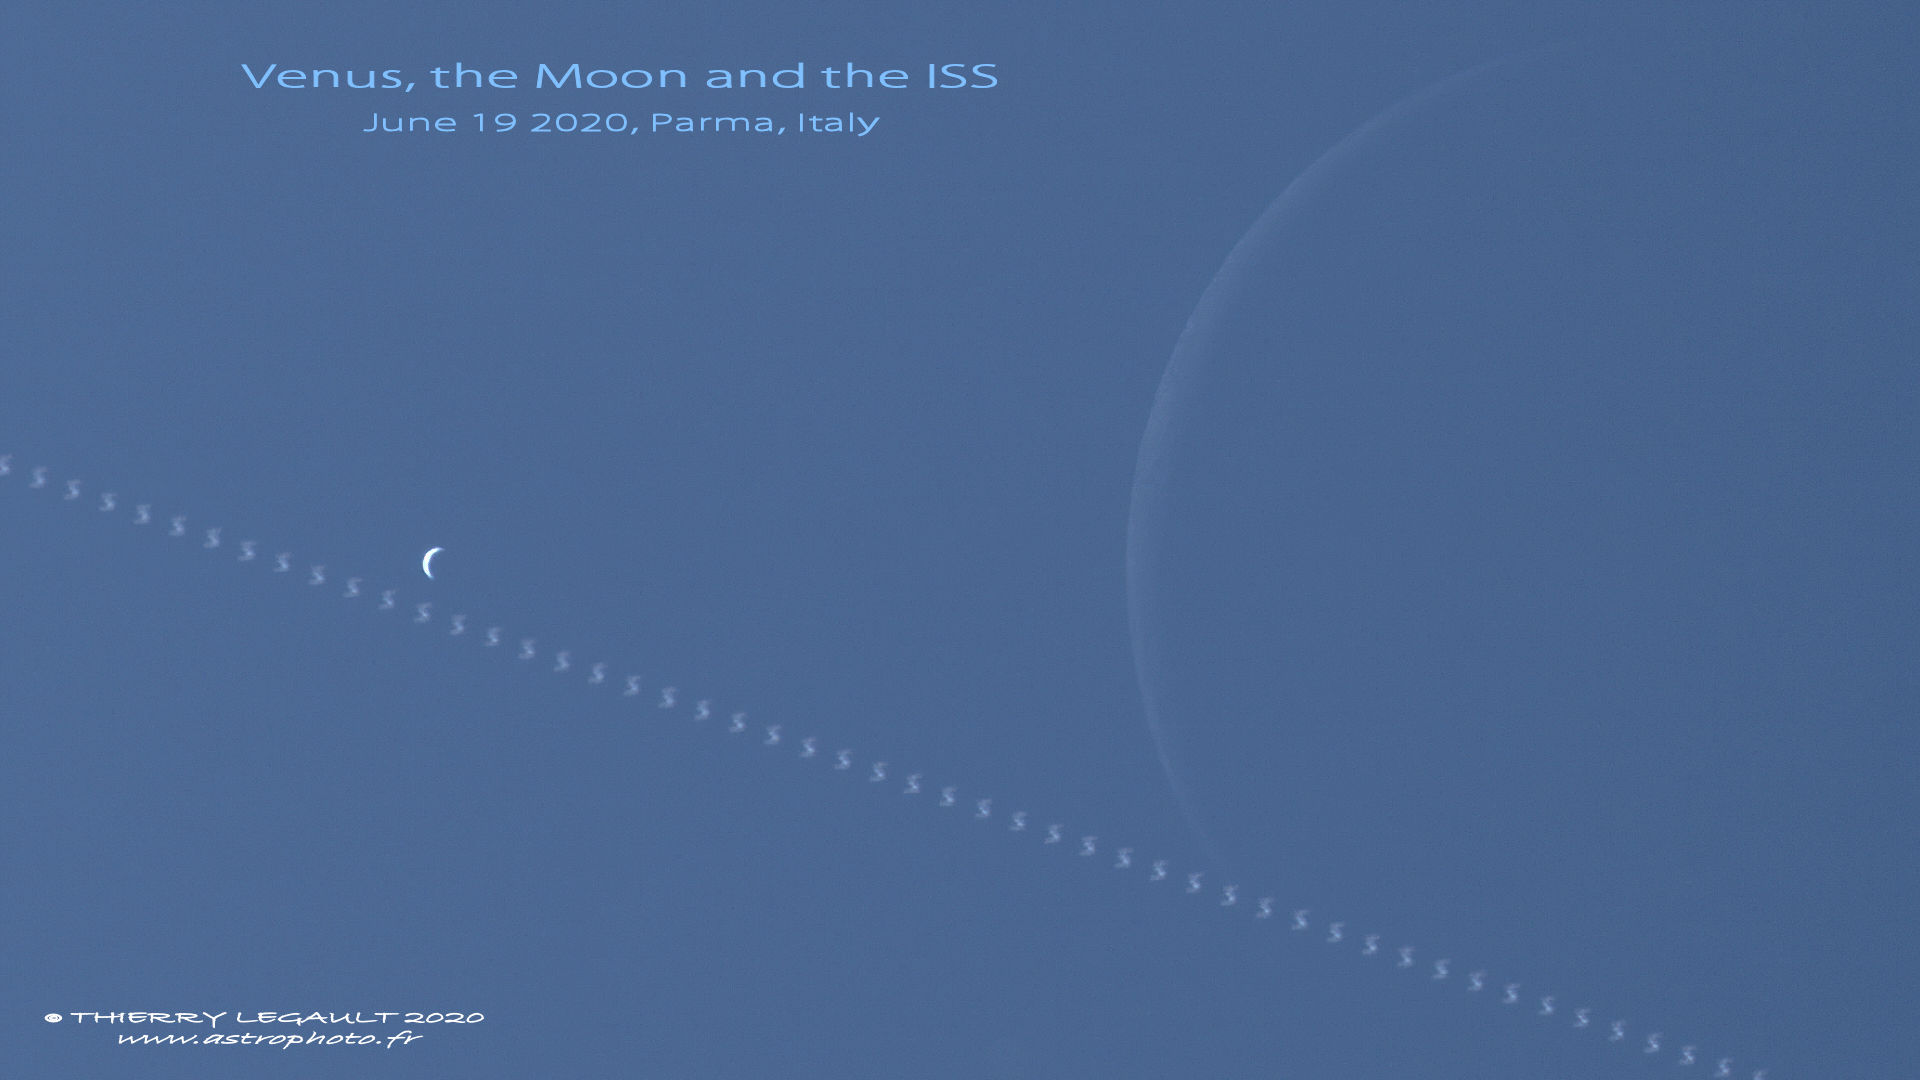 thierry-legault-iss_occultation_venus_mo